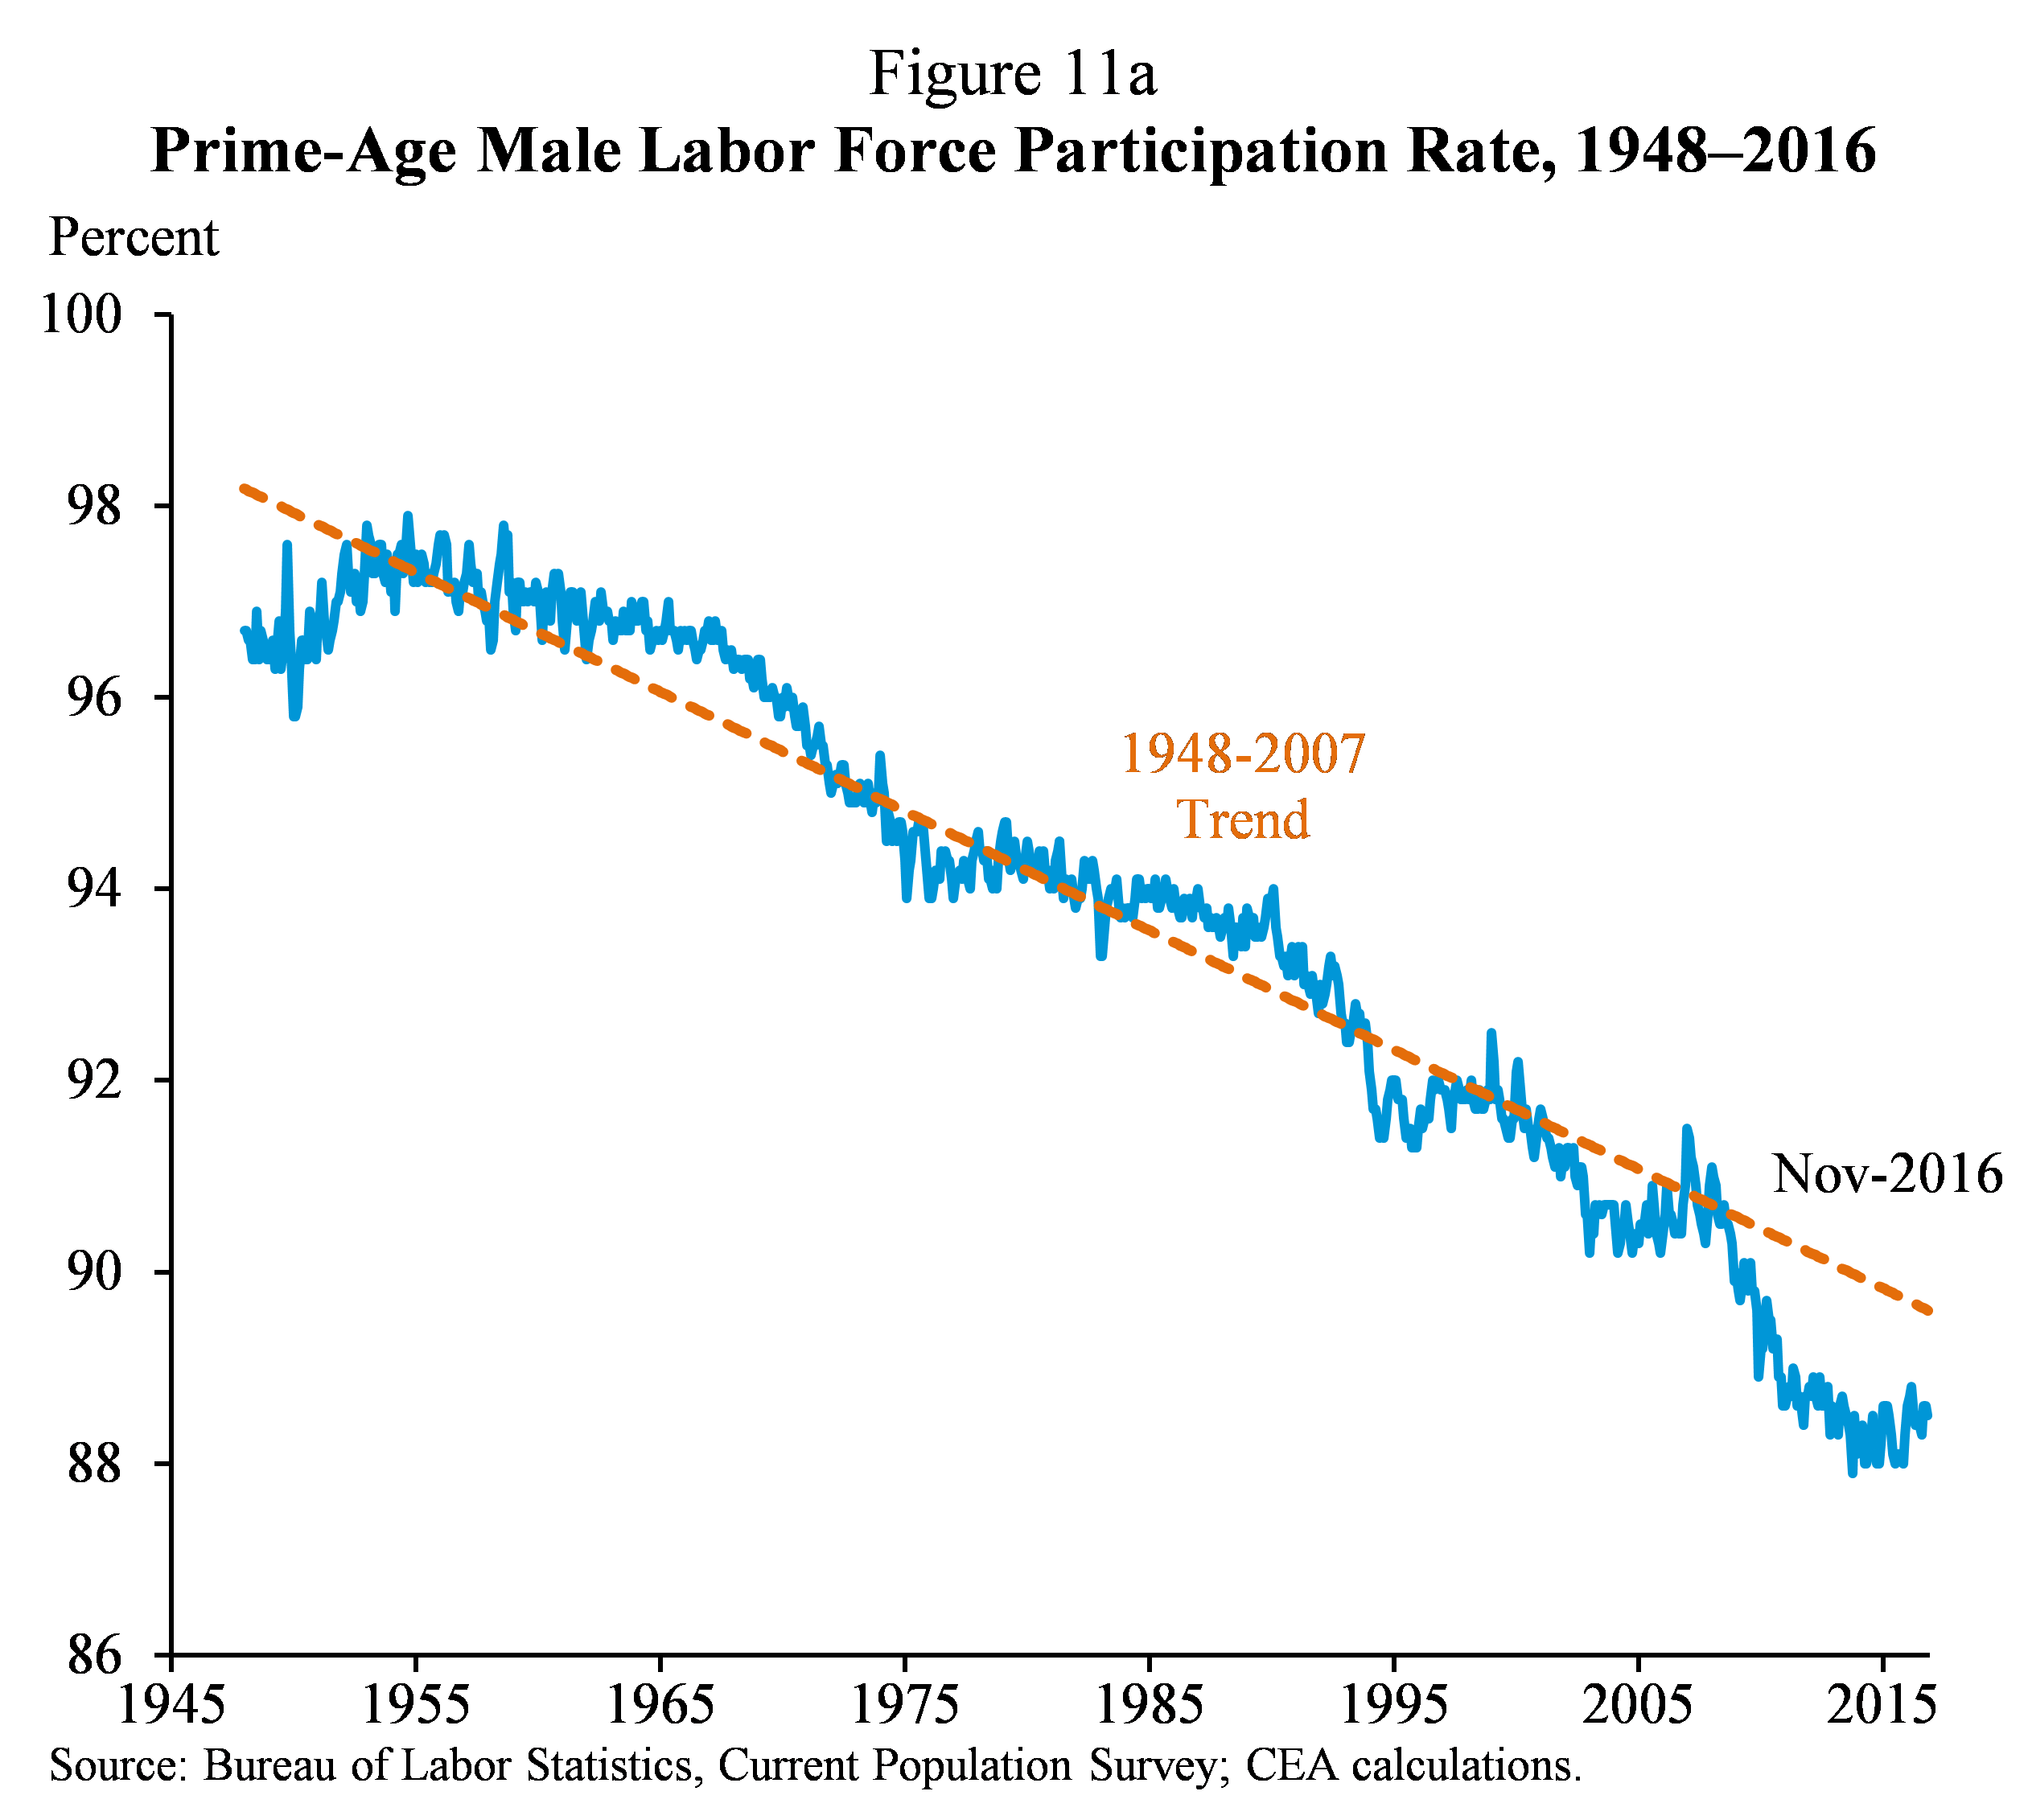 Figure 11a.  Prime-Age Male Labor Force Participation Rate, 1948-2016